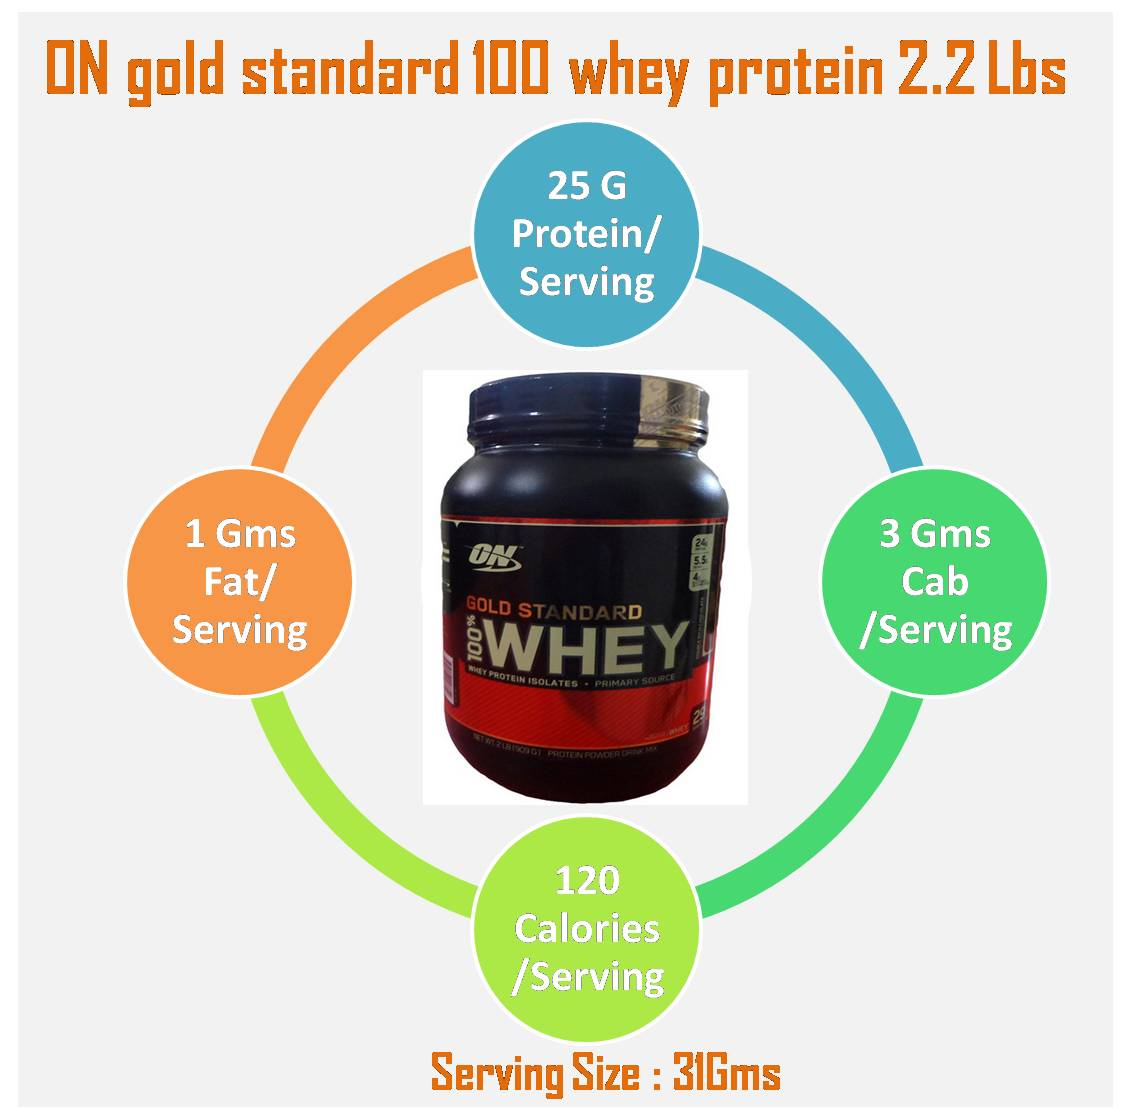 Benefits of On Gold Standard 100% Whey Protein